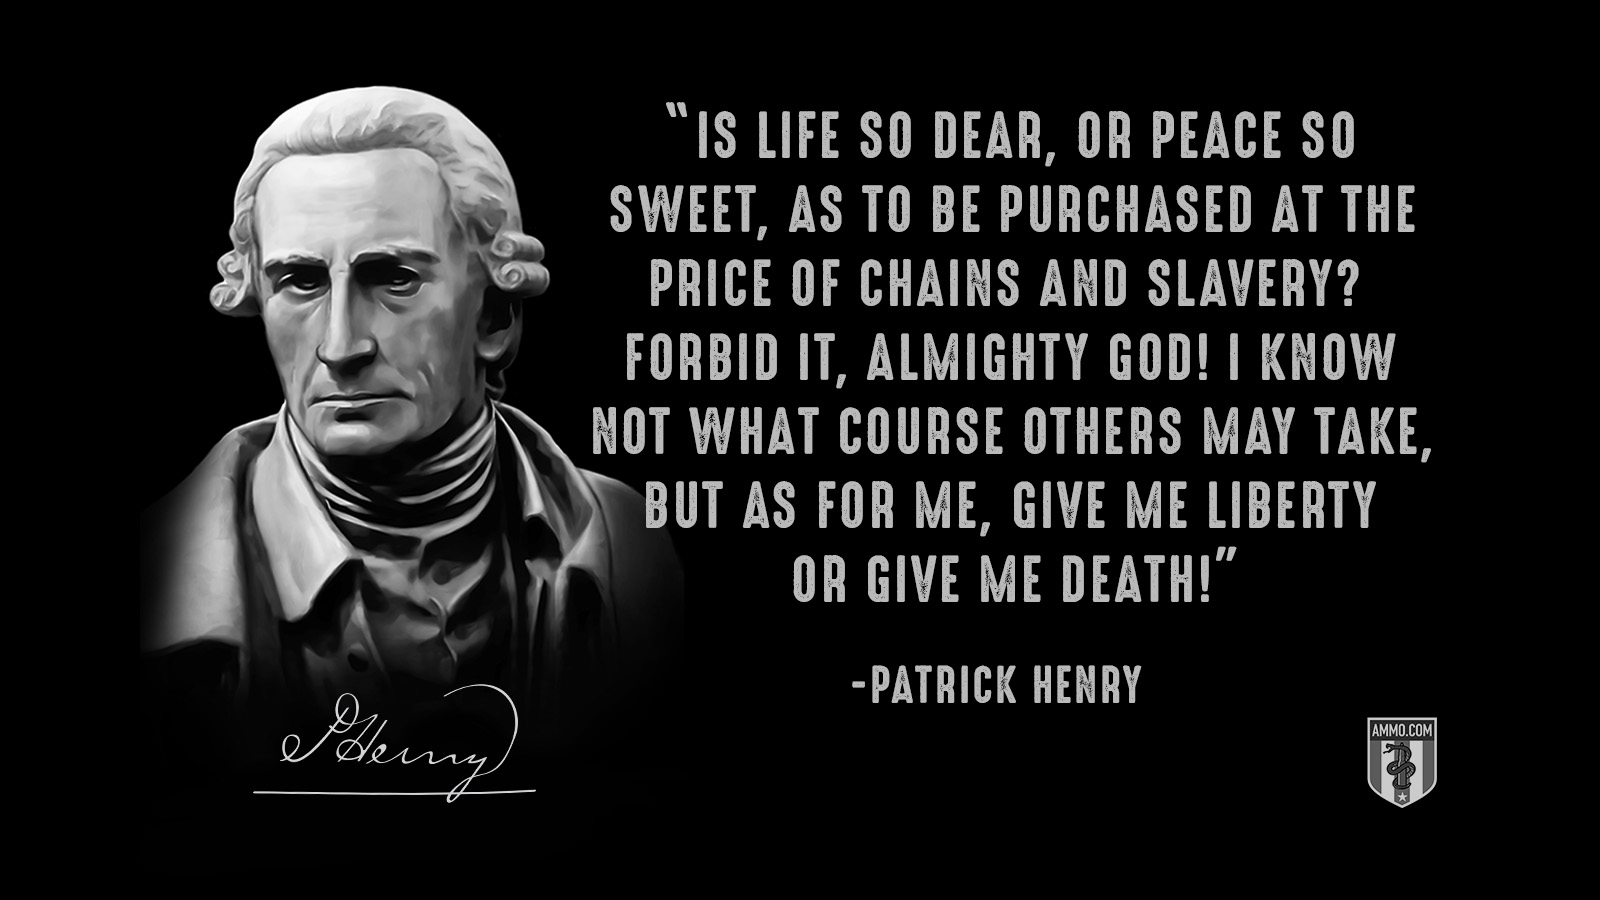 """Is life so dear, or peace so sweet, as to be purchased at the price of chains and slavery? Forbid it, Almighty God! I know not what course others may take, but as for me, give me liberty or give me death!"" - Patrick Henry"